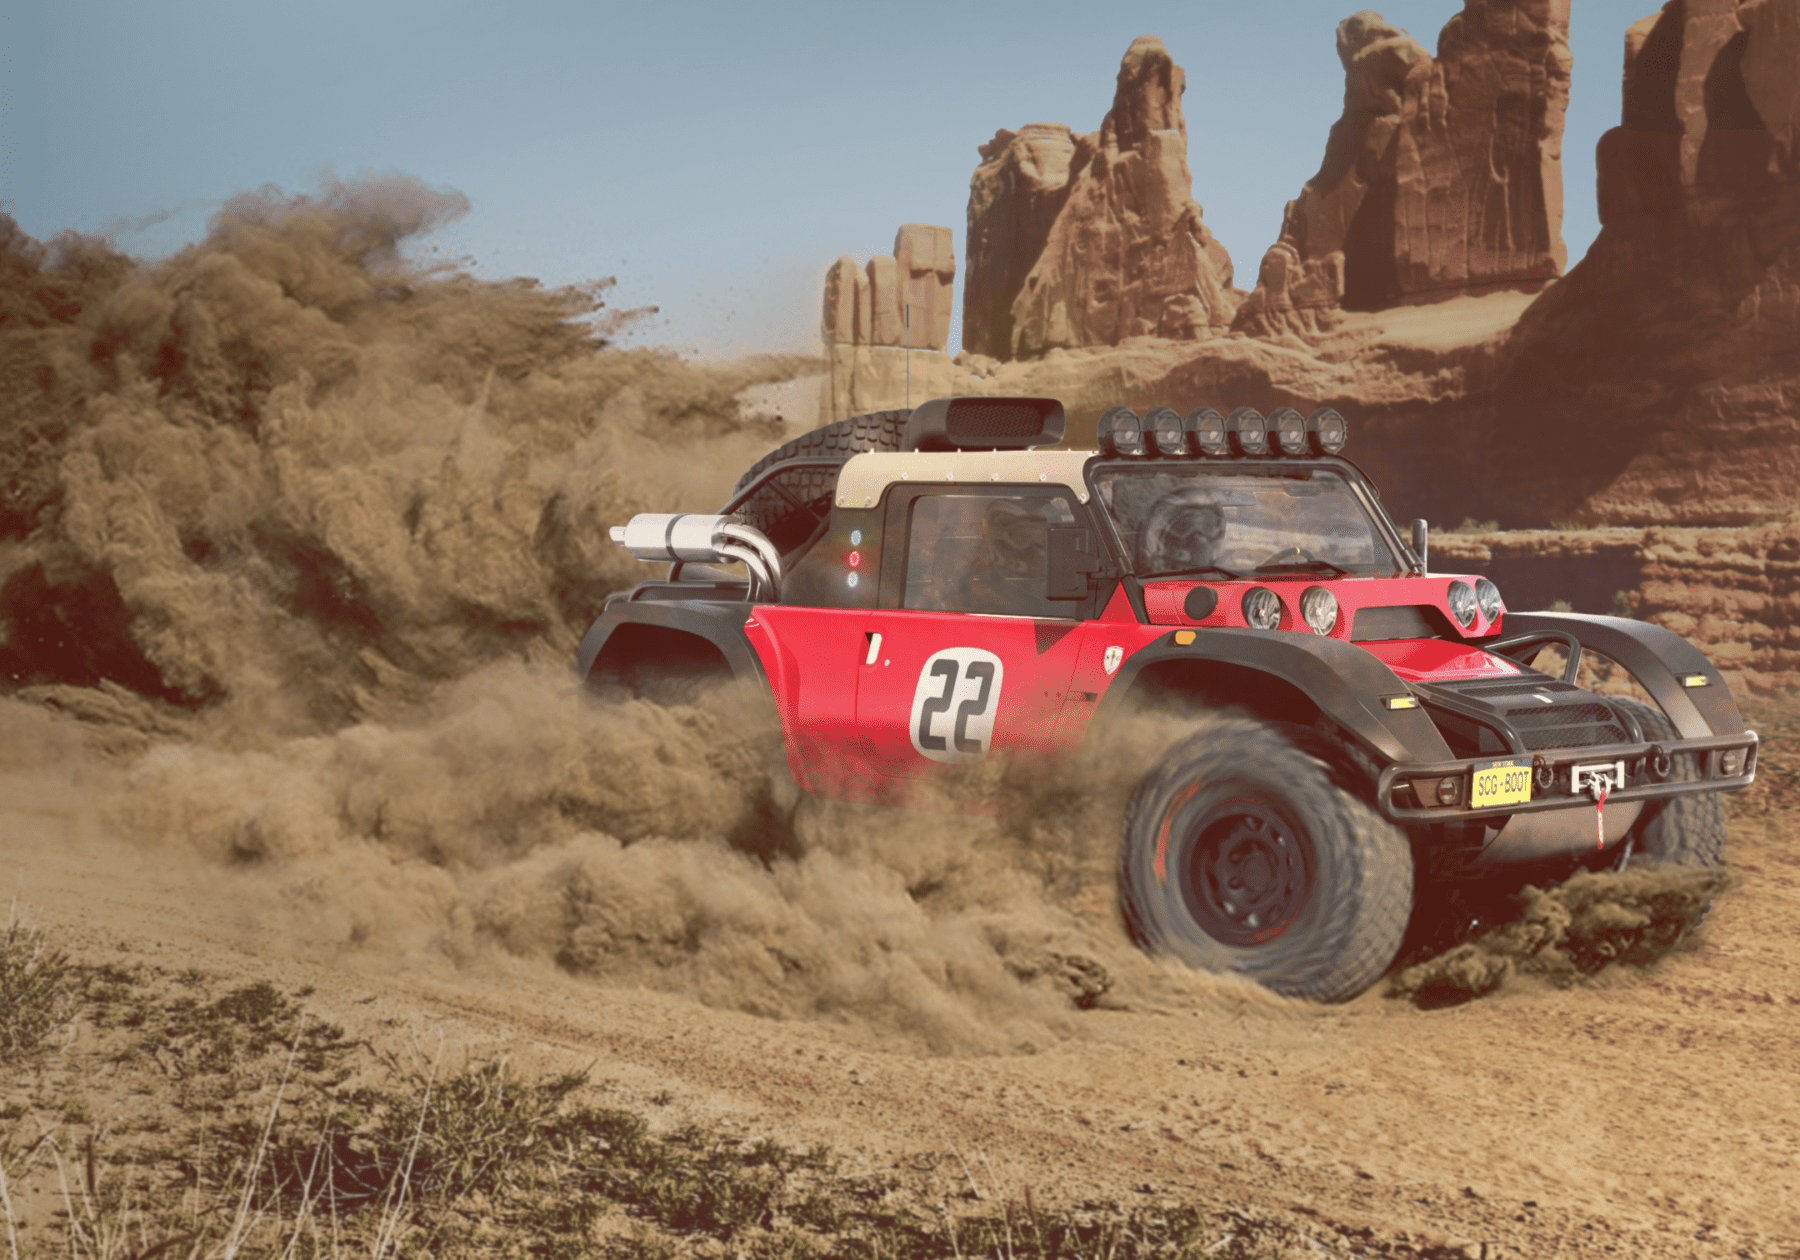 SCG Boot is ready for Baja in 2019